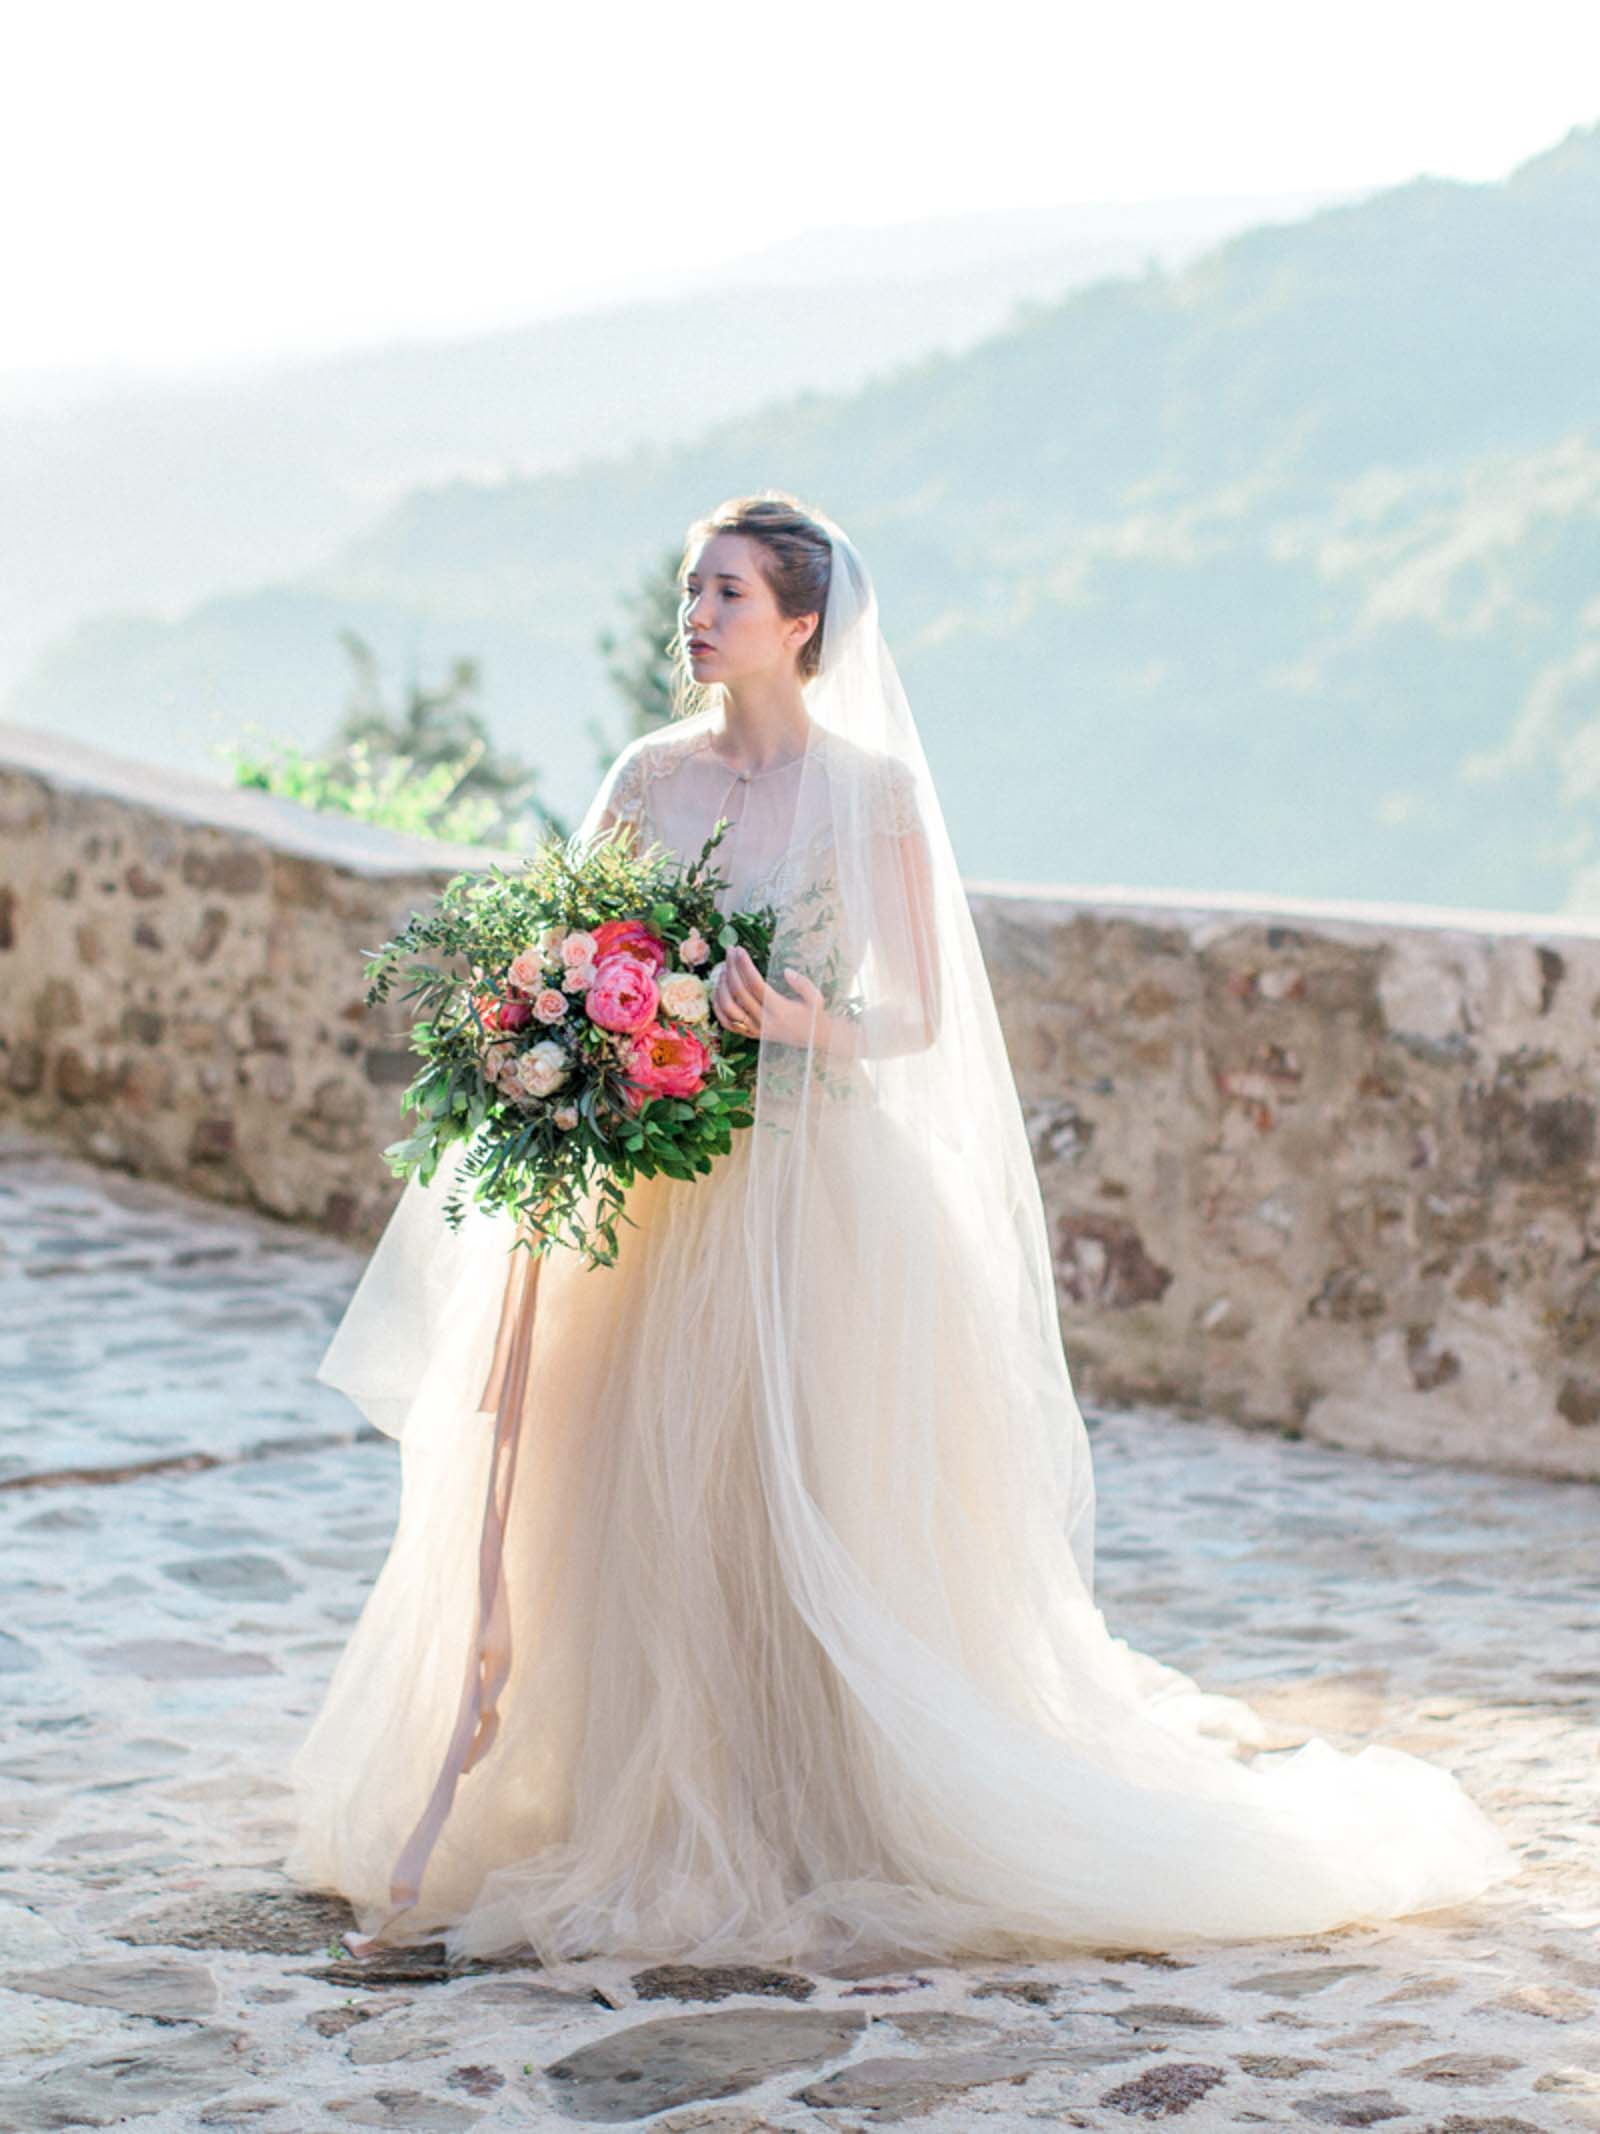 Tuscany Italy Wedding Inspiration | Married Morenos